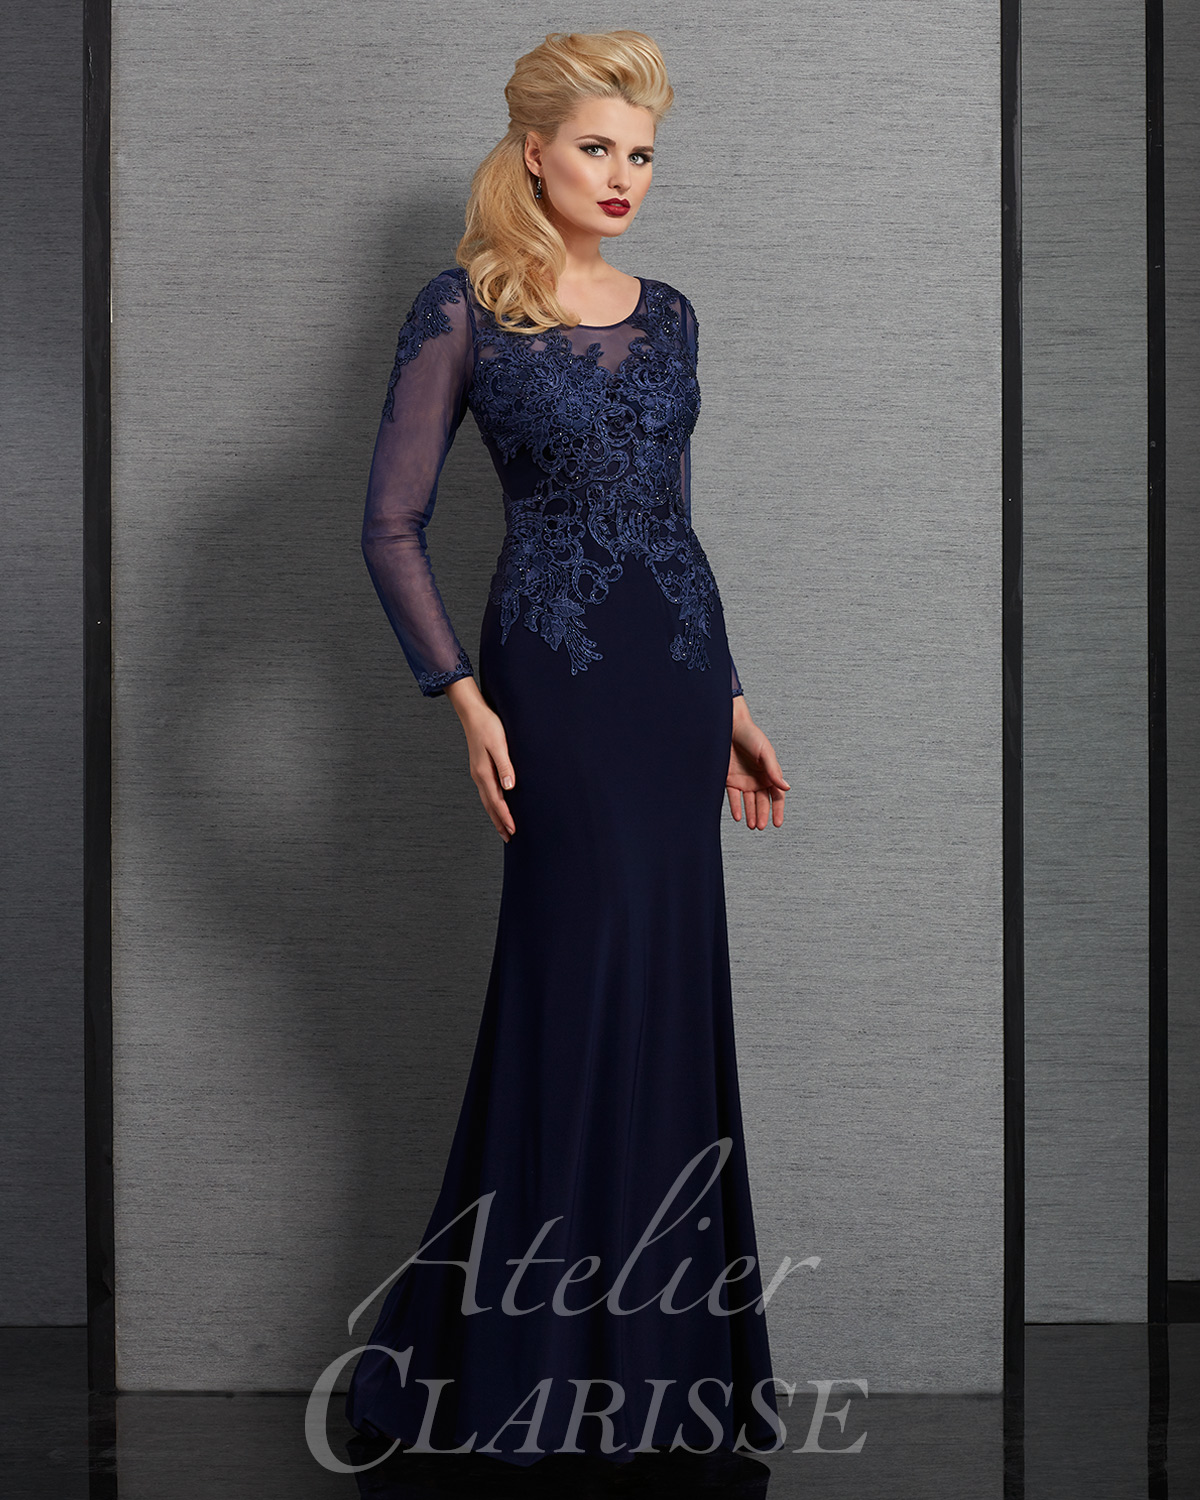 f310b73a37ab atelier-clarisse-long-sleeve-special-occasion-dress-6333-2.jpg